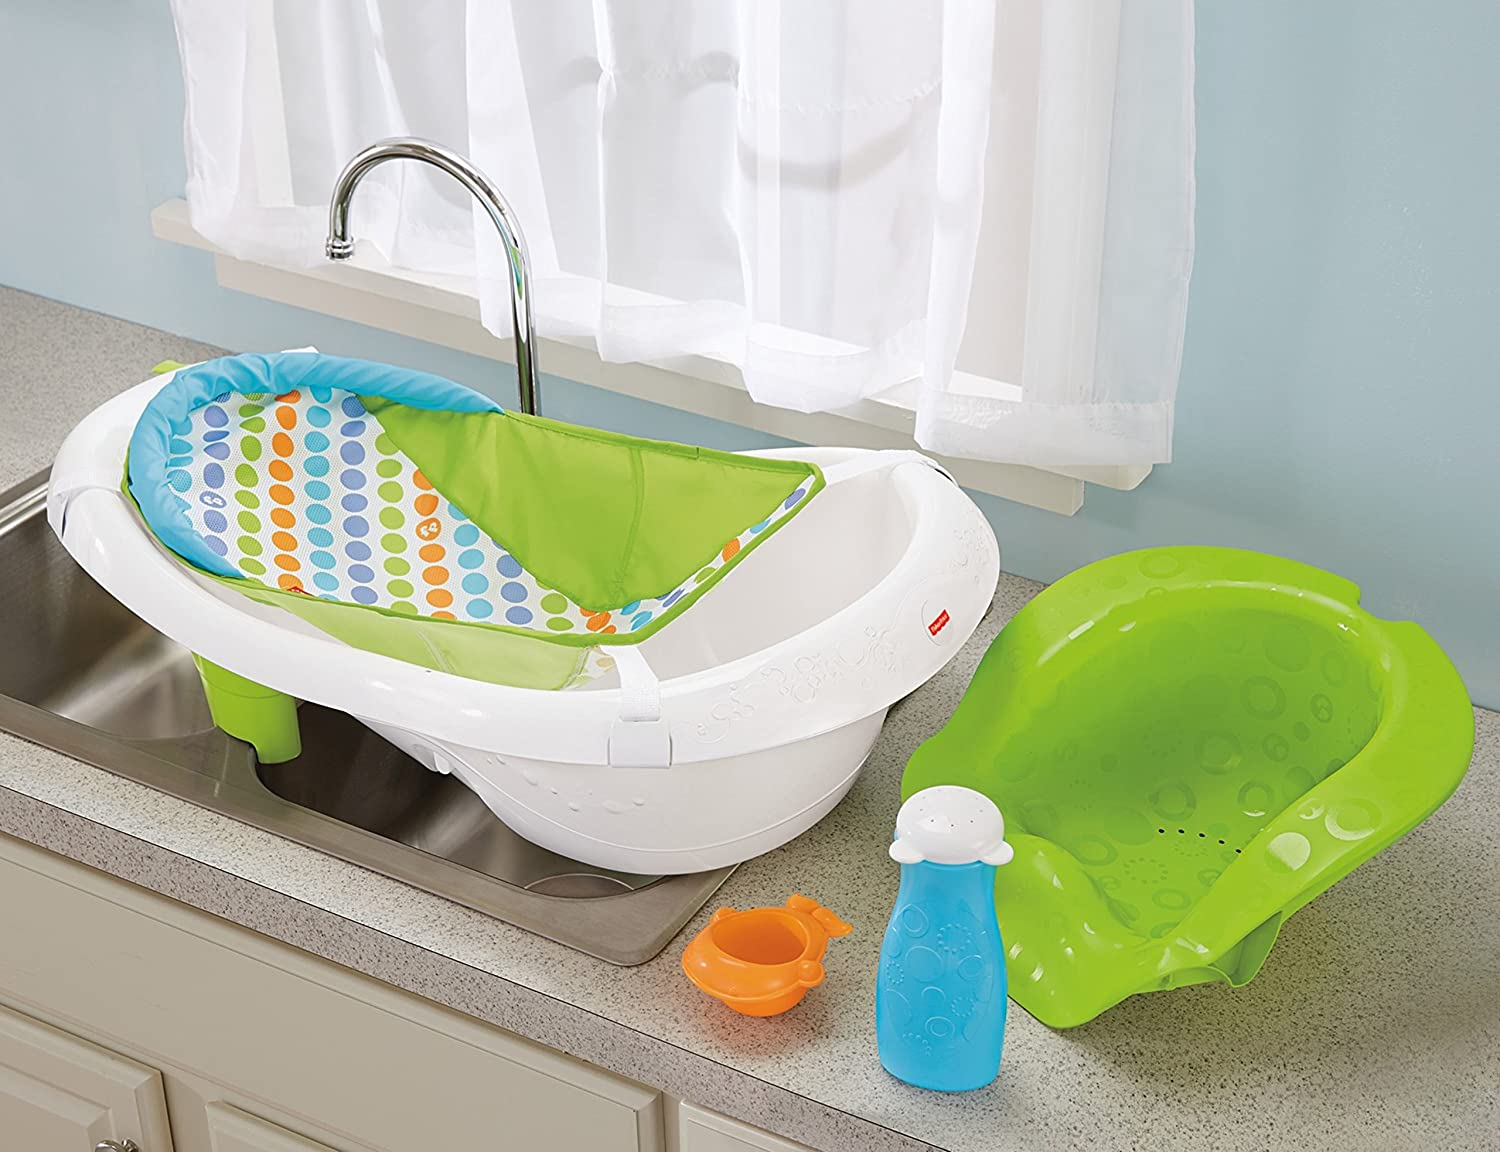 Amazon.com : Fisher-Price 4-in-1 Sling \'n Seat Tub : Baby Bathing ...